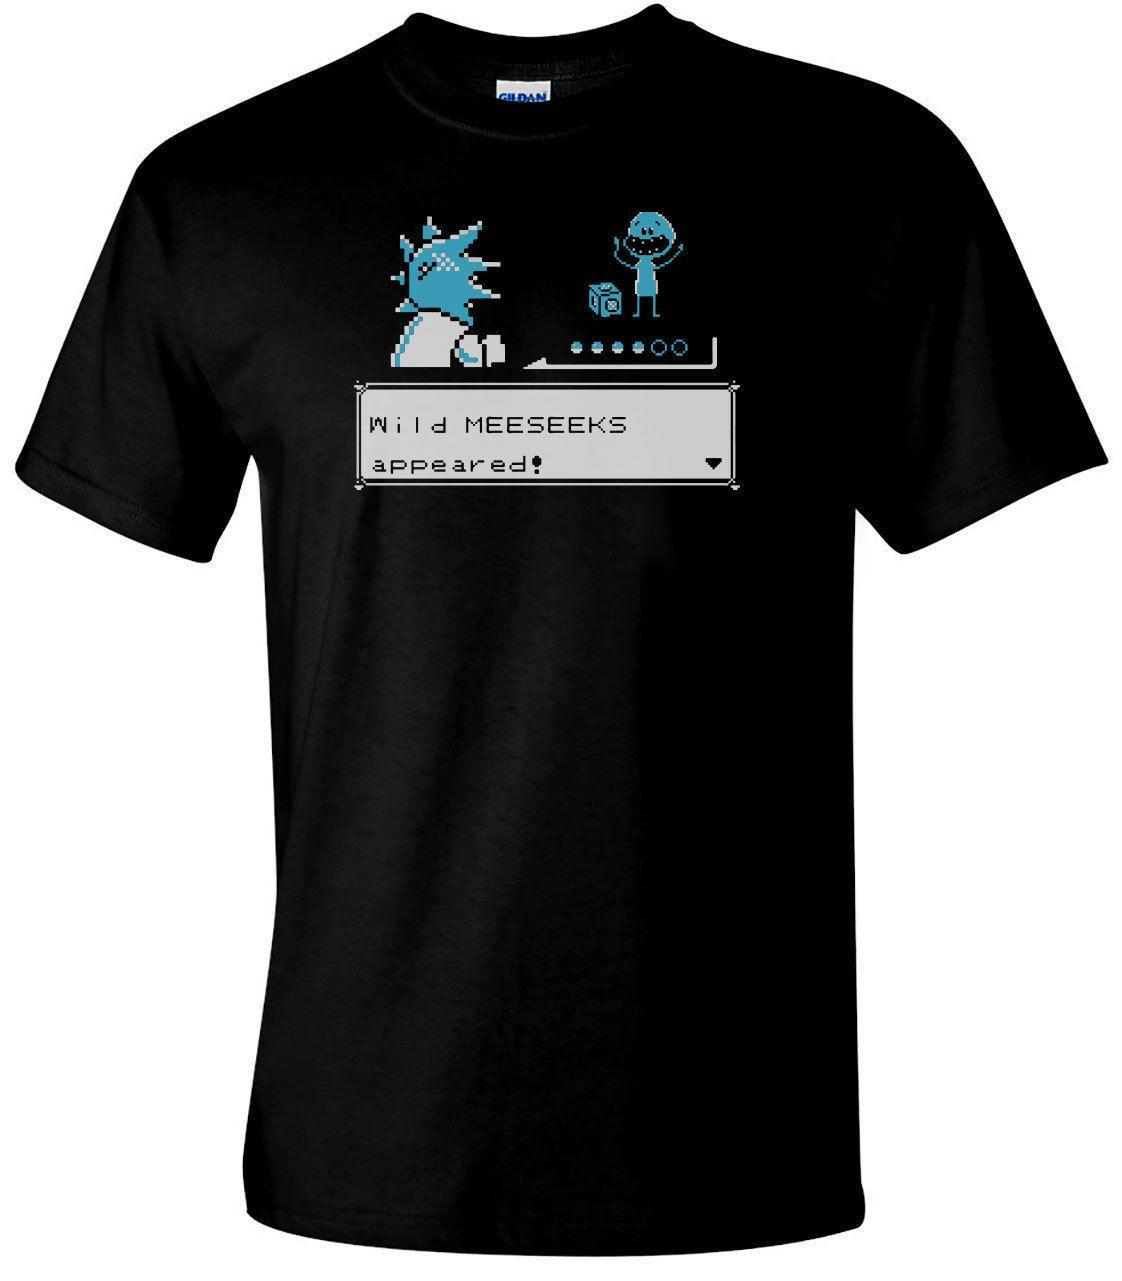 Wildes Mr Meeseeks Gaming T-Shirt Herren-Komödie T-Shirt Rick Morty inspiriert Top